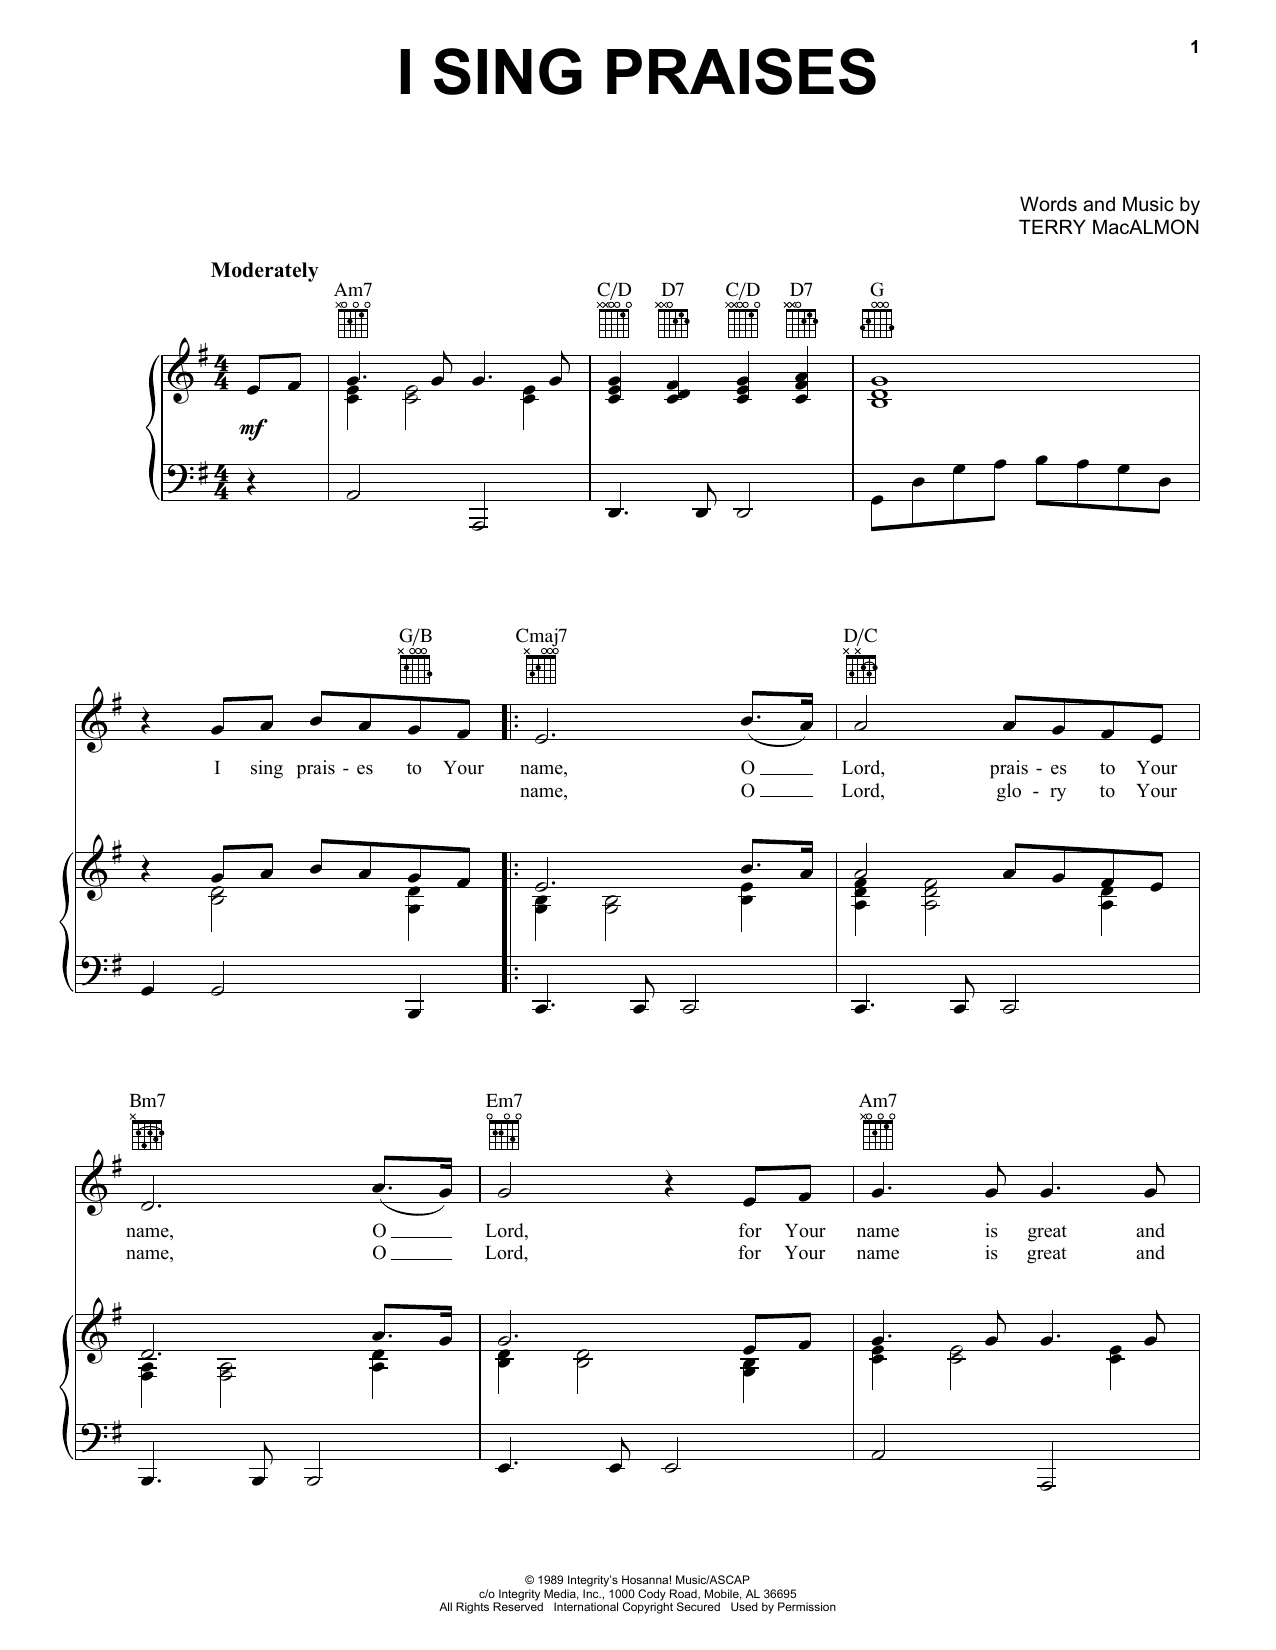 Terry MacAlmon I Sing Praises sheet music notes and chords. Download Printable PDF.